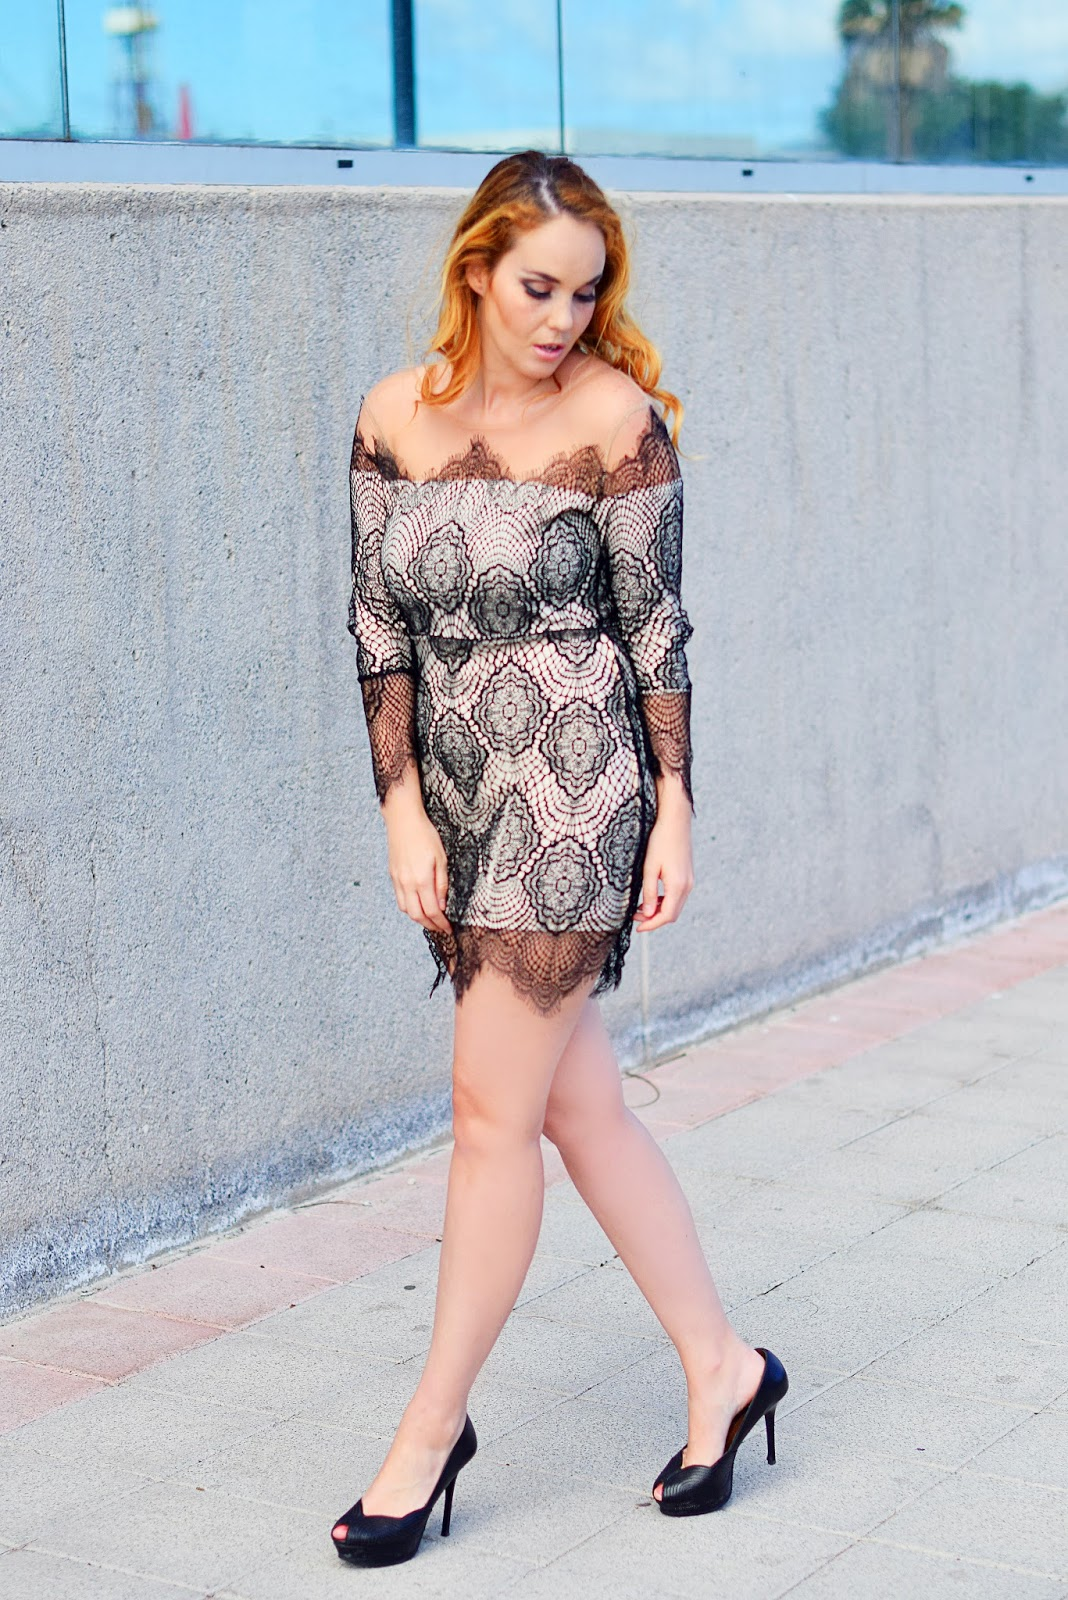 nery hdez, lace dress, yoyomelody , nude dress, dresses for events